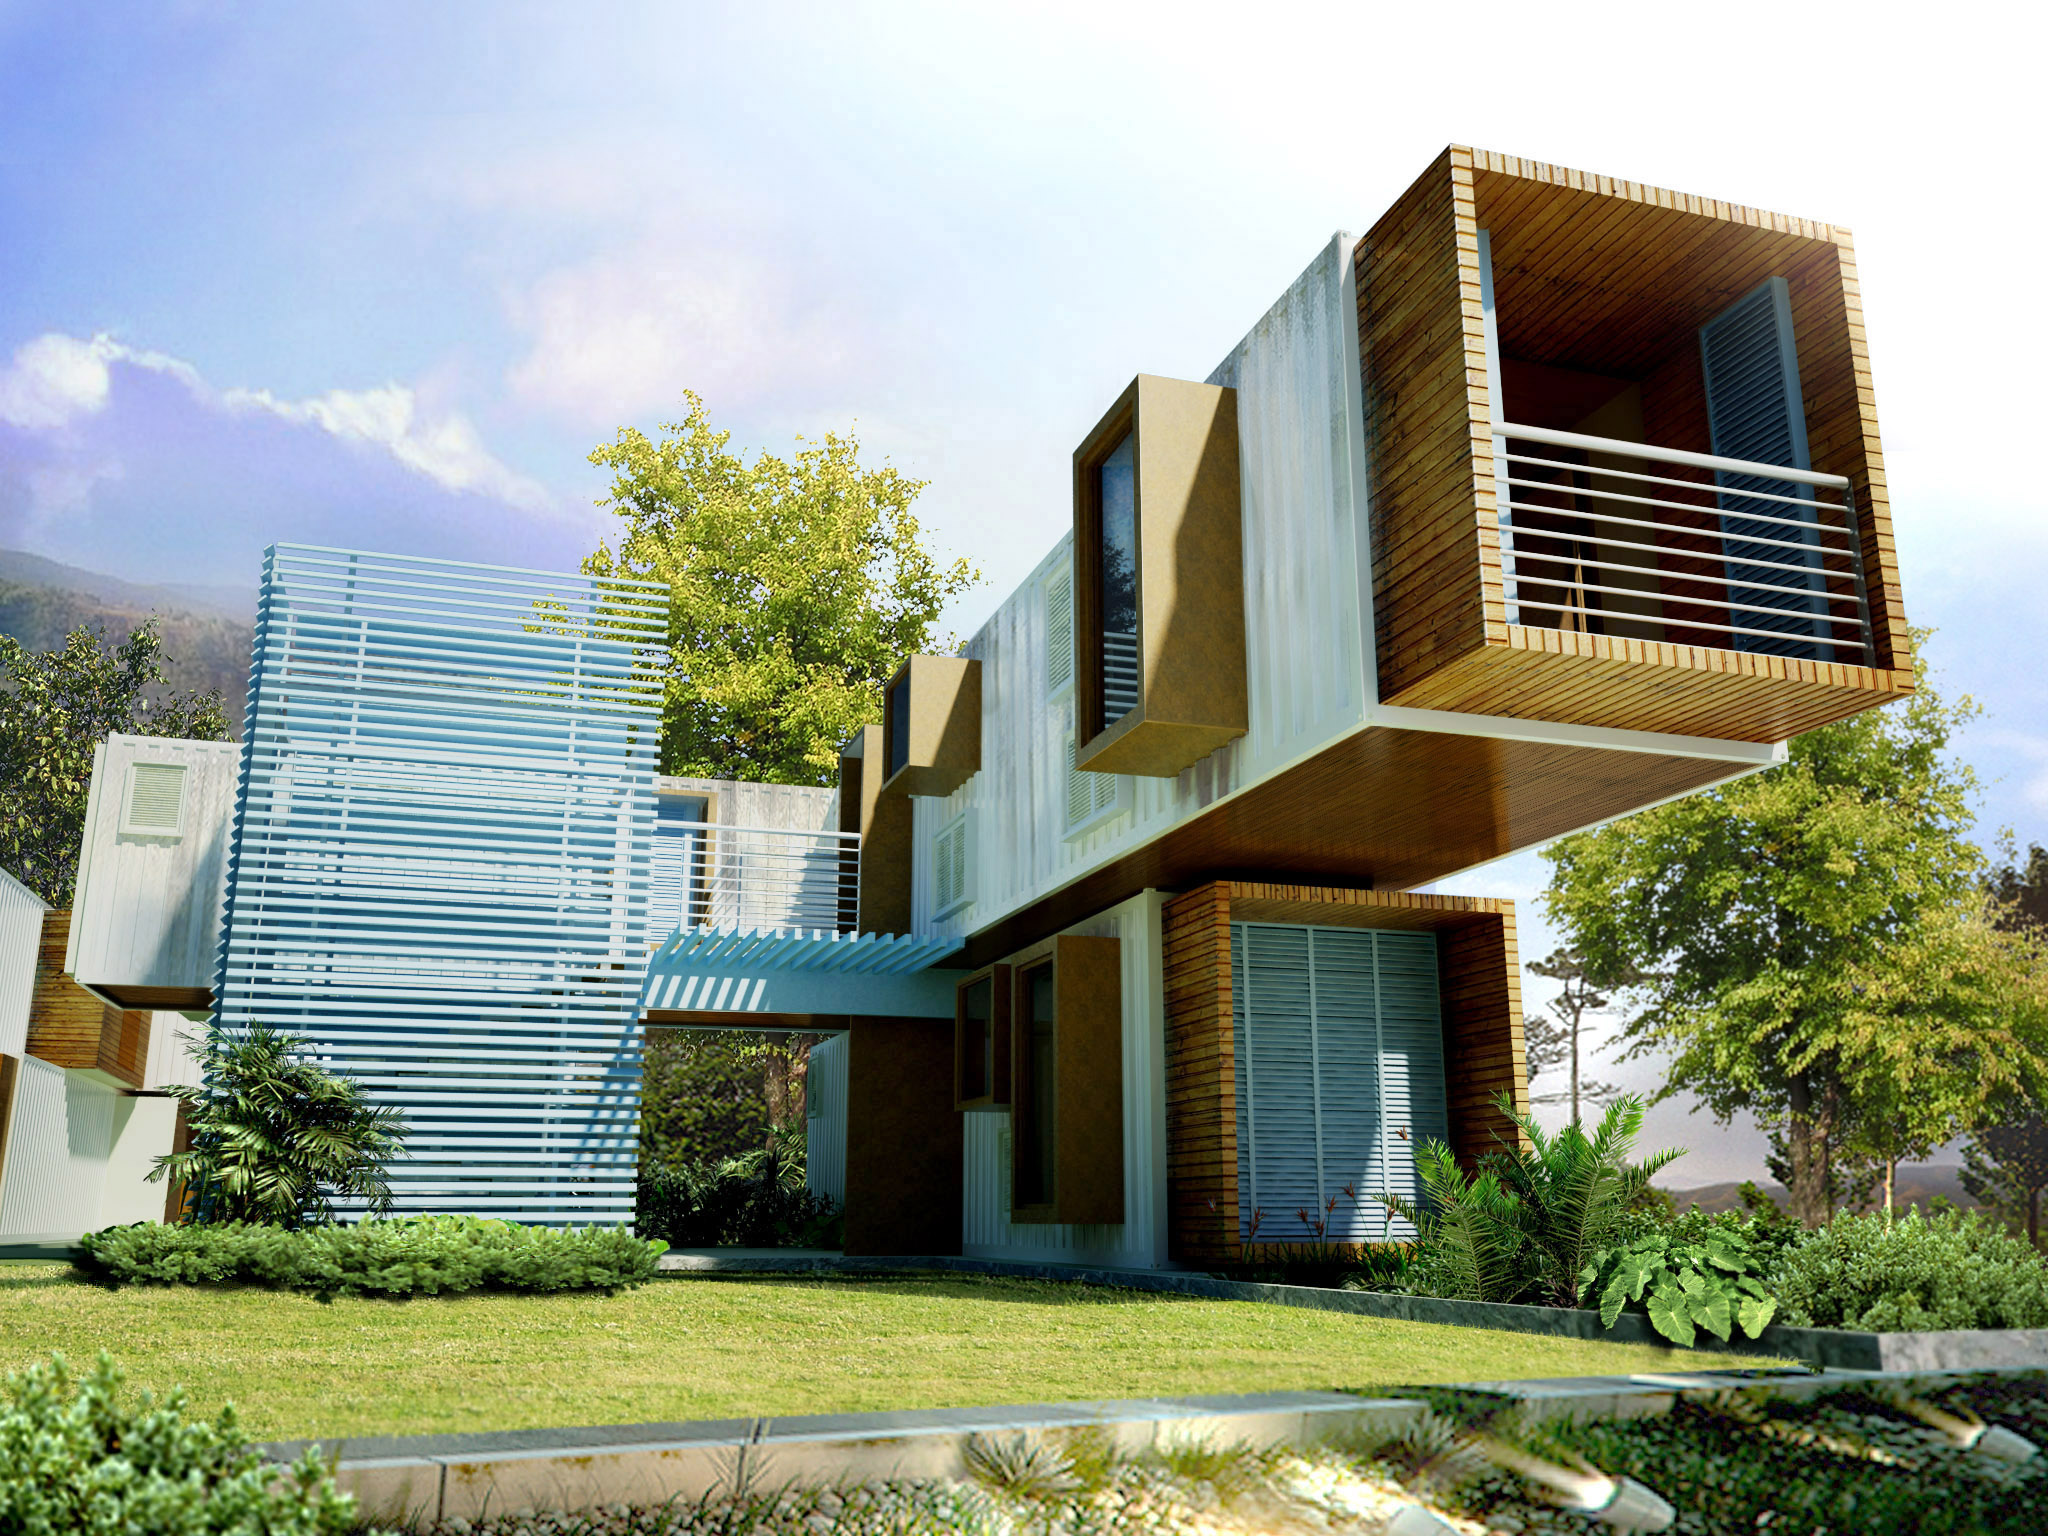 9 inspiring modular container home designs container living for Online architecture design